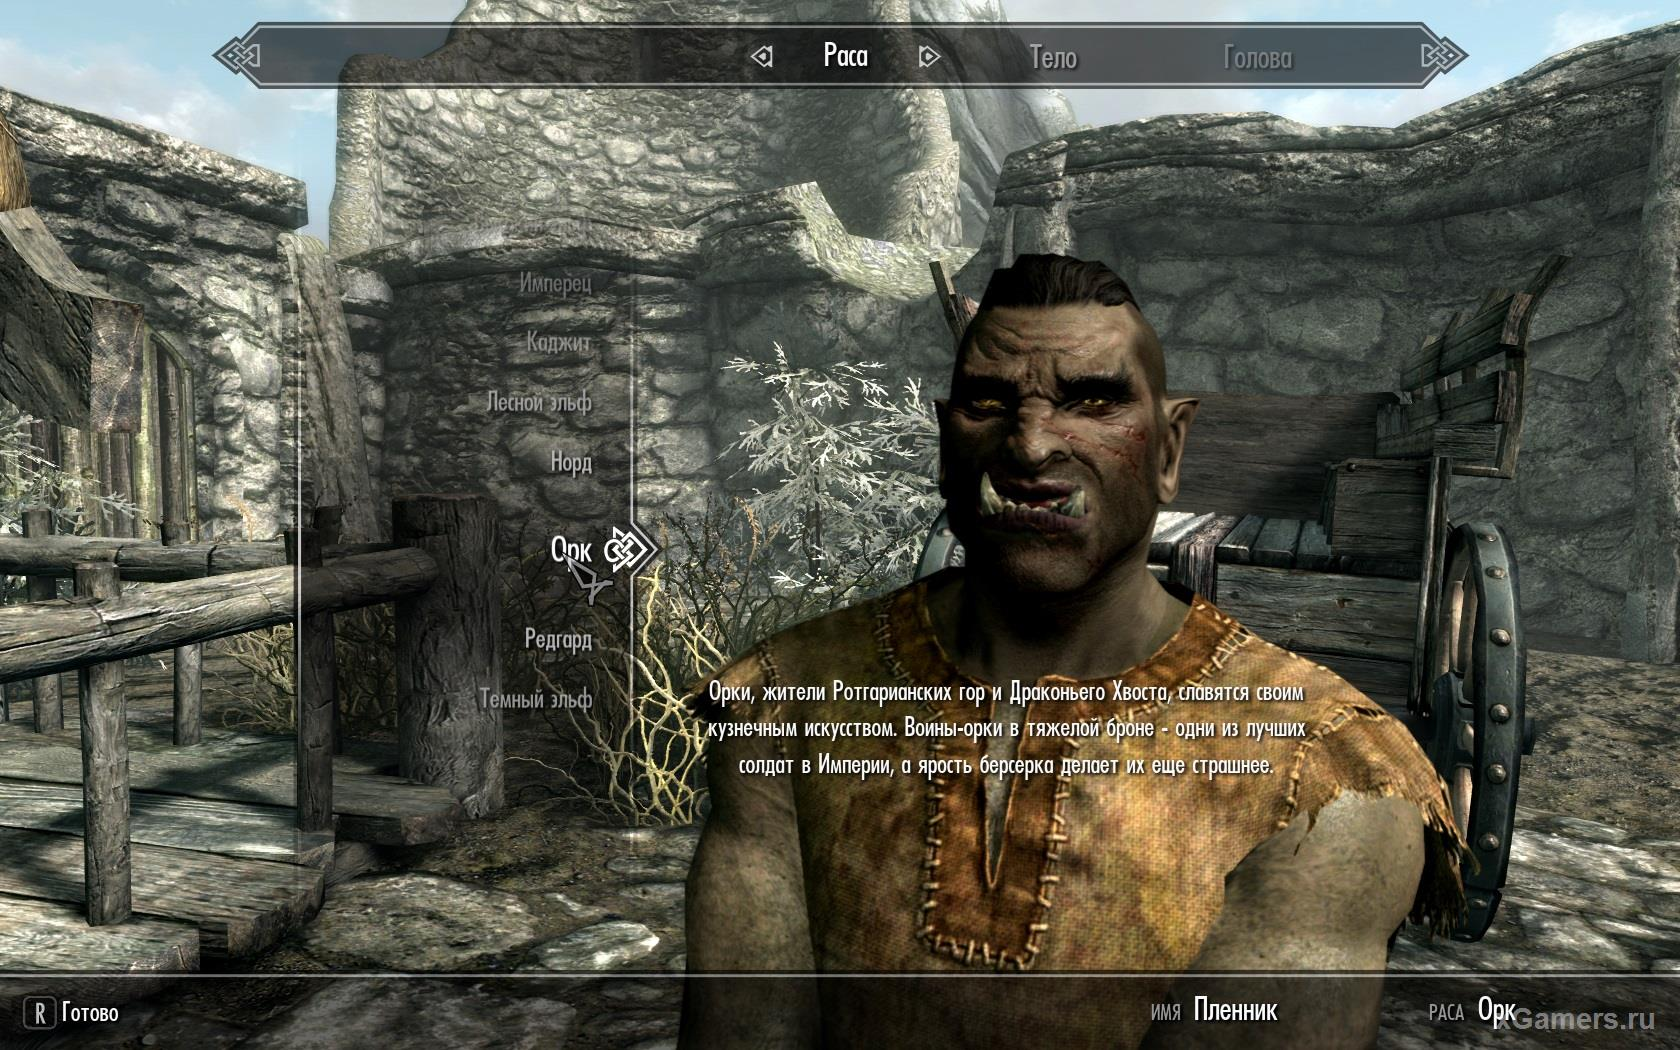 Race - Orcs in the game Skyrim